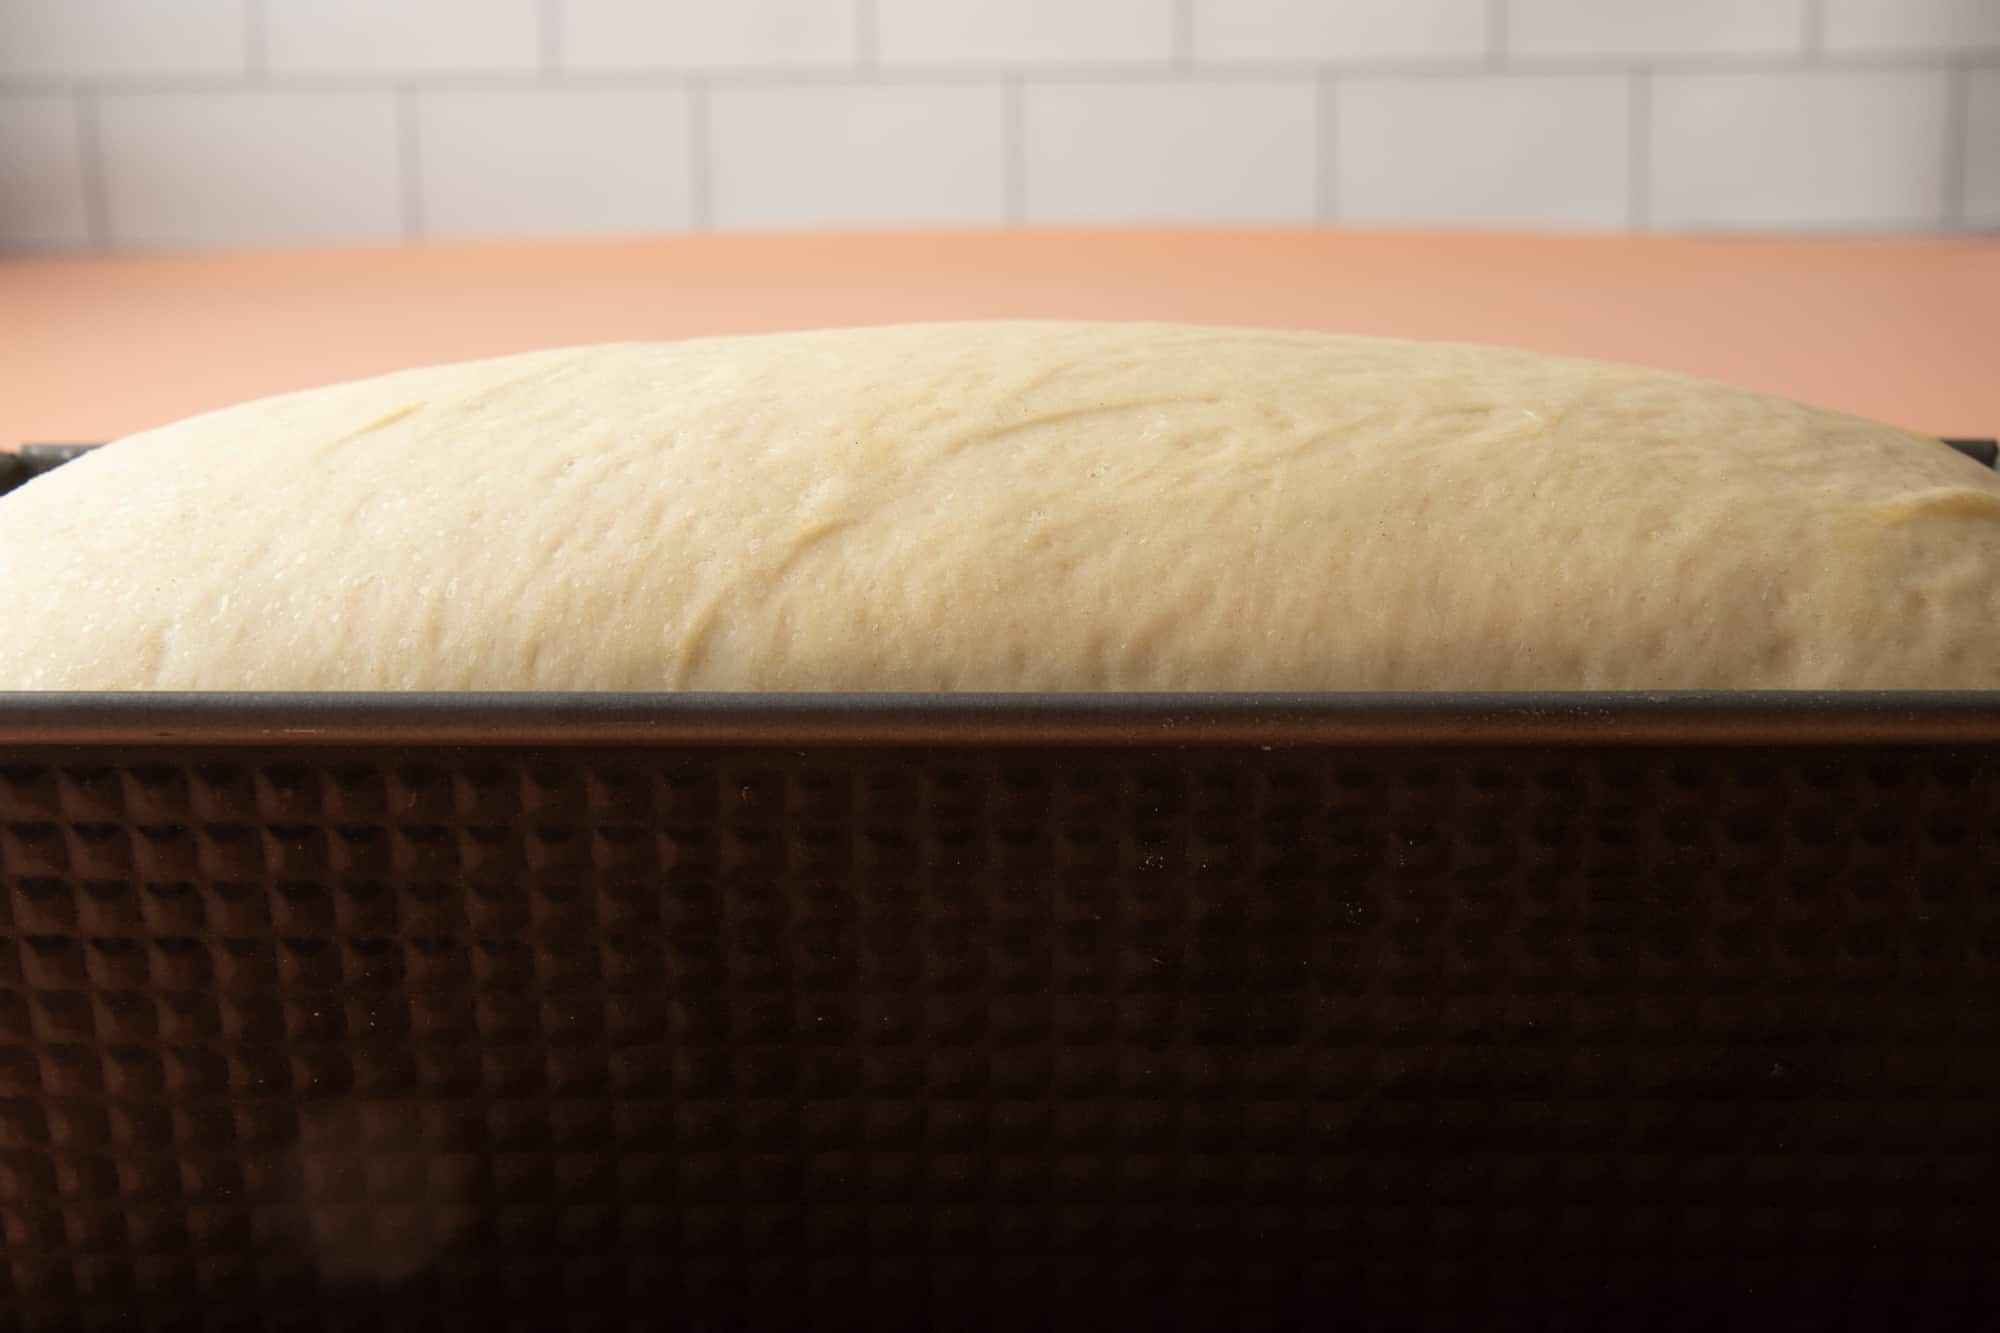 Dough in a loaf pan rises out above the edge.